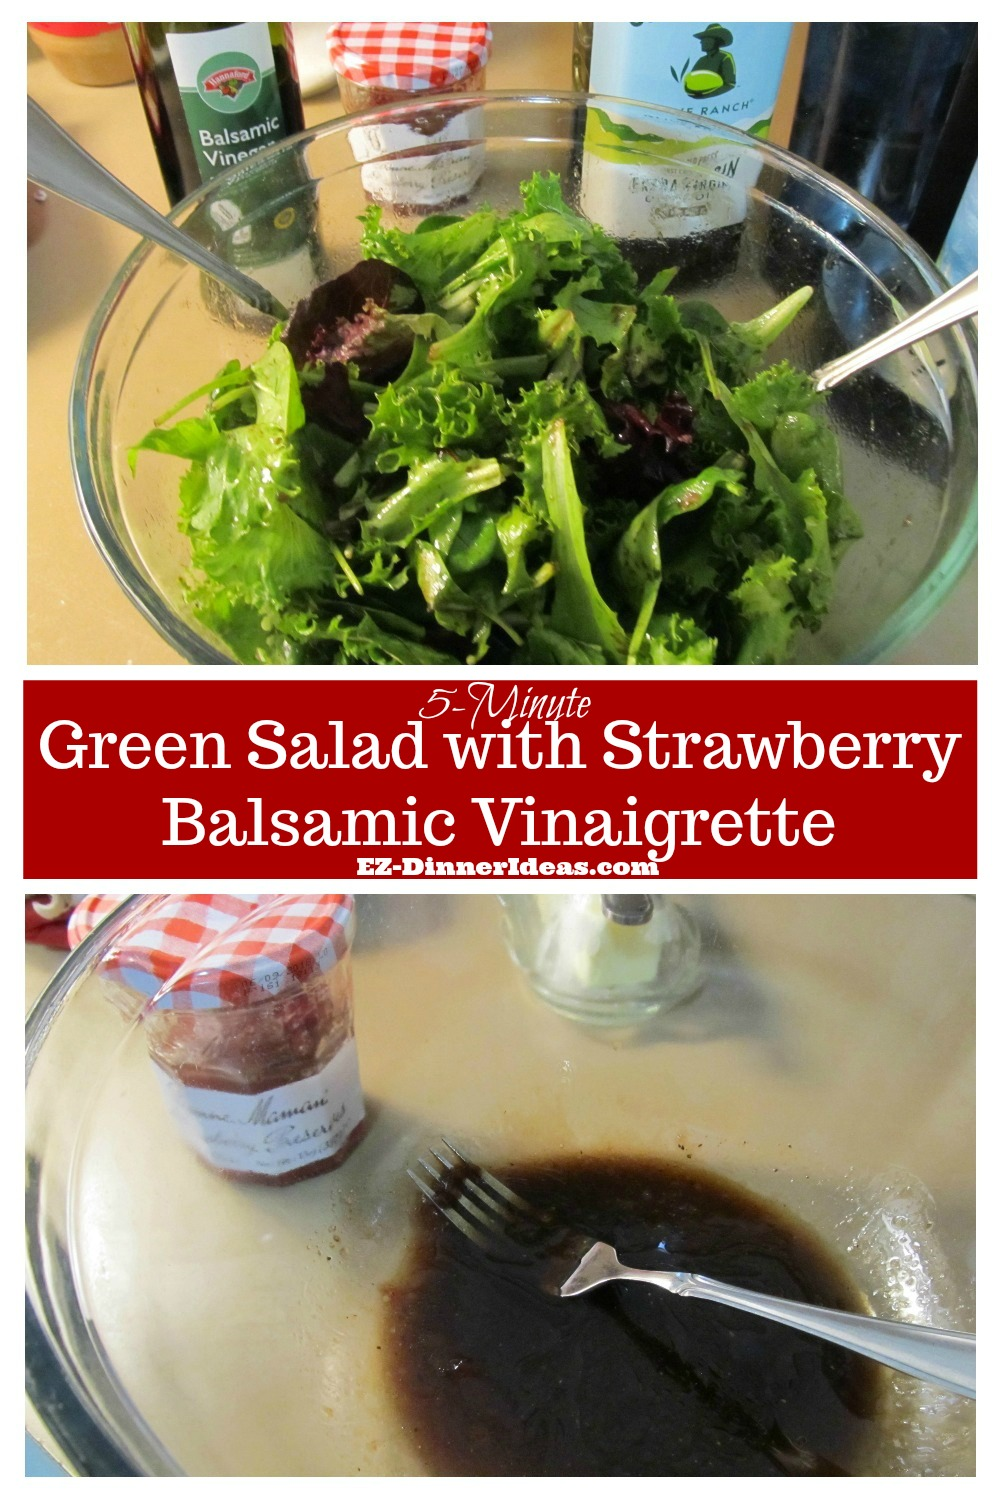 This tossed green salad recipe only takes 5 minutes to make.  It can be an awesome family side dish, a lunch or a dinner for one.